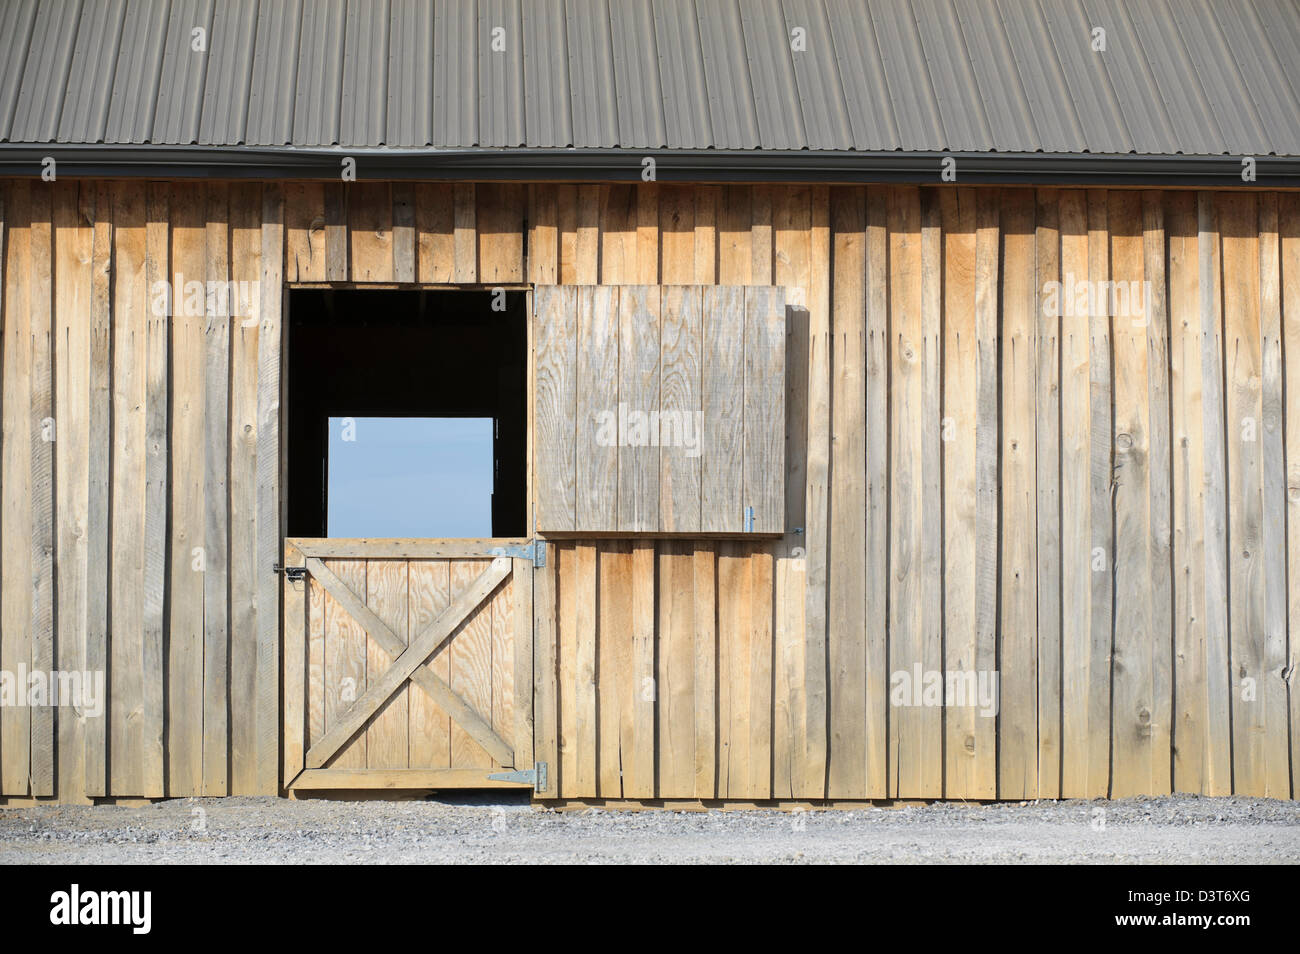 Open Barn Door And Wooden Wall For Backgrounds And Design Elements